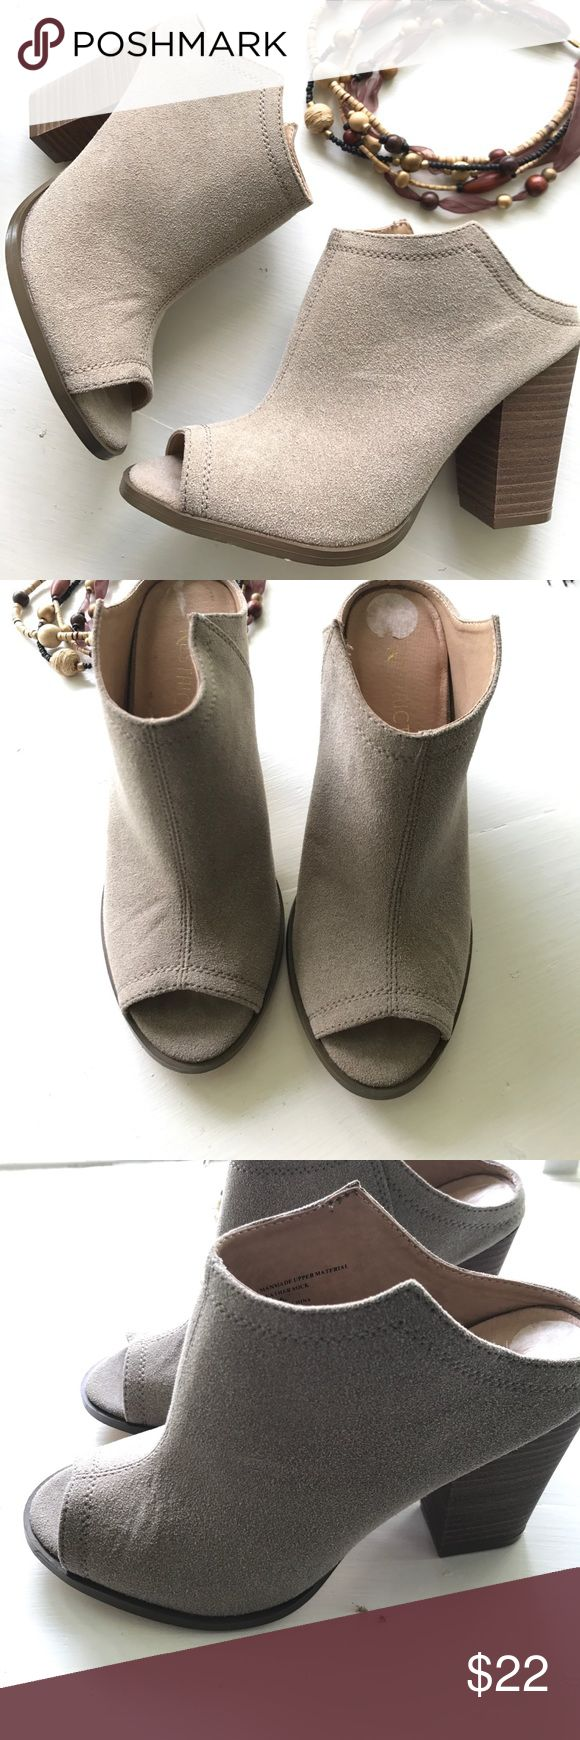 Suede Mules Heeled mules / cut out in back / beige shade of suede / worn once / slight wrinkle on both heels / could not remove size tag all the way / overall great condition with no stains or nicks / bundle with one more item and save! Restricted Shoes Mules & Clogs